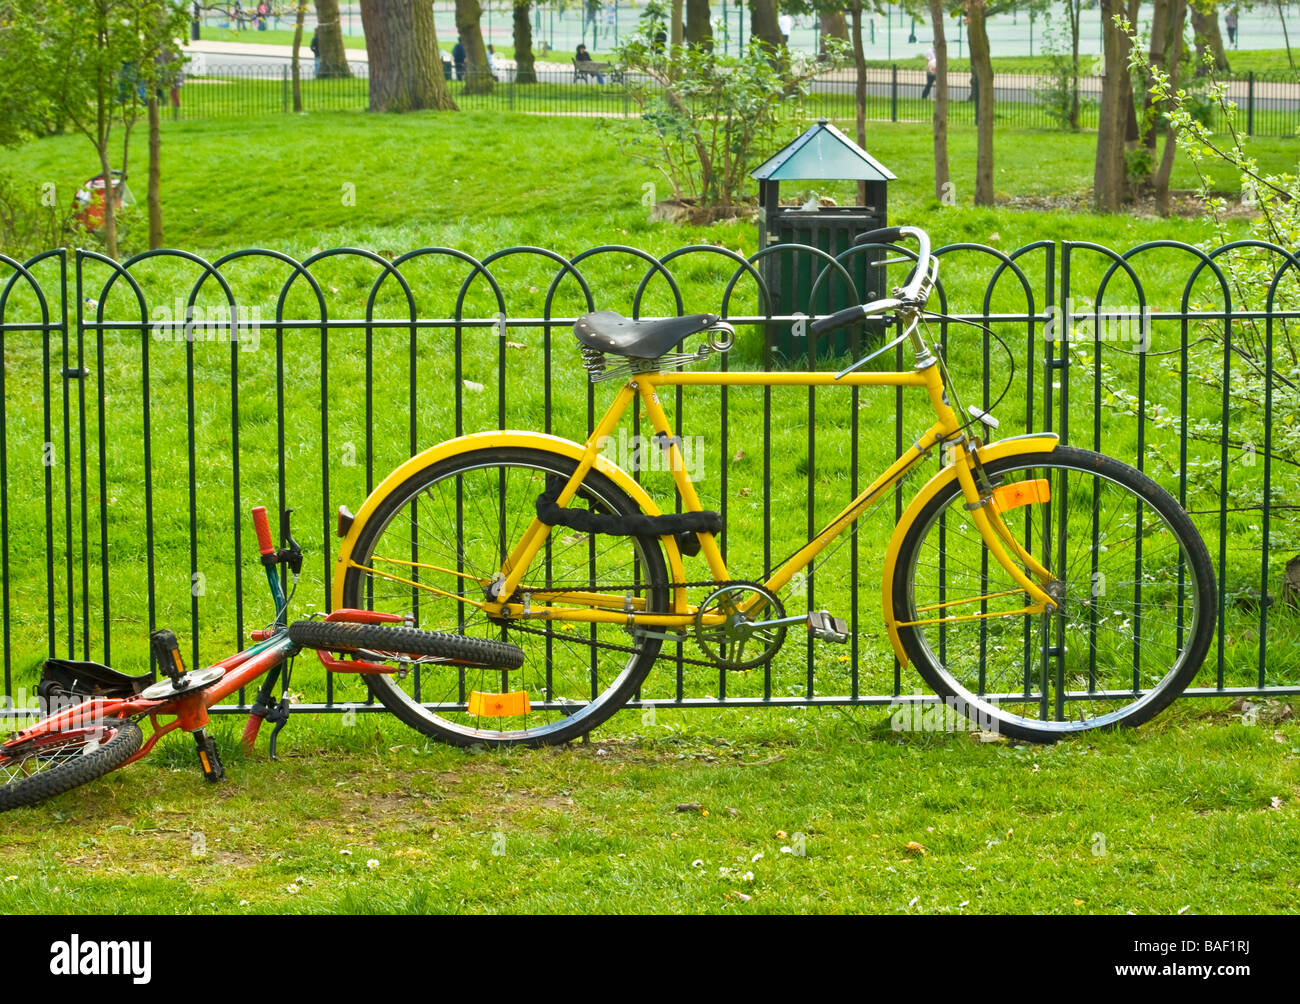 Unusual classically styled yellow gents cycle chained to park railings. A red and green child's cycle thrown - Stock Image